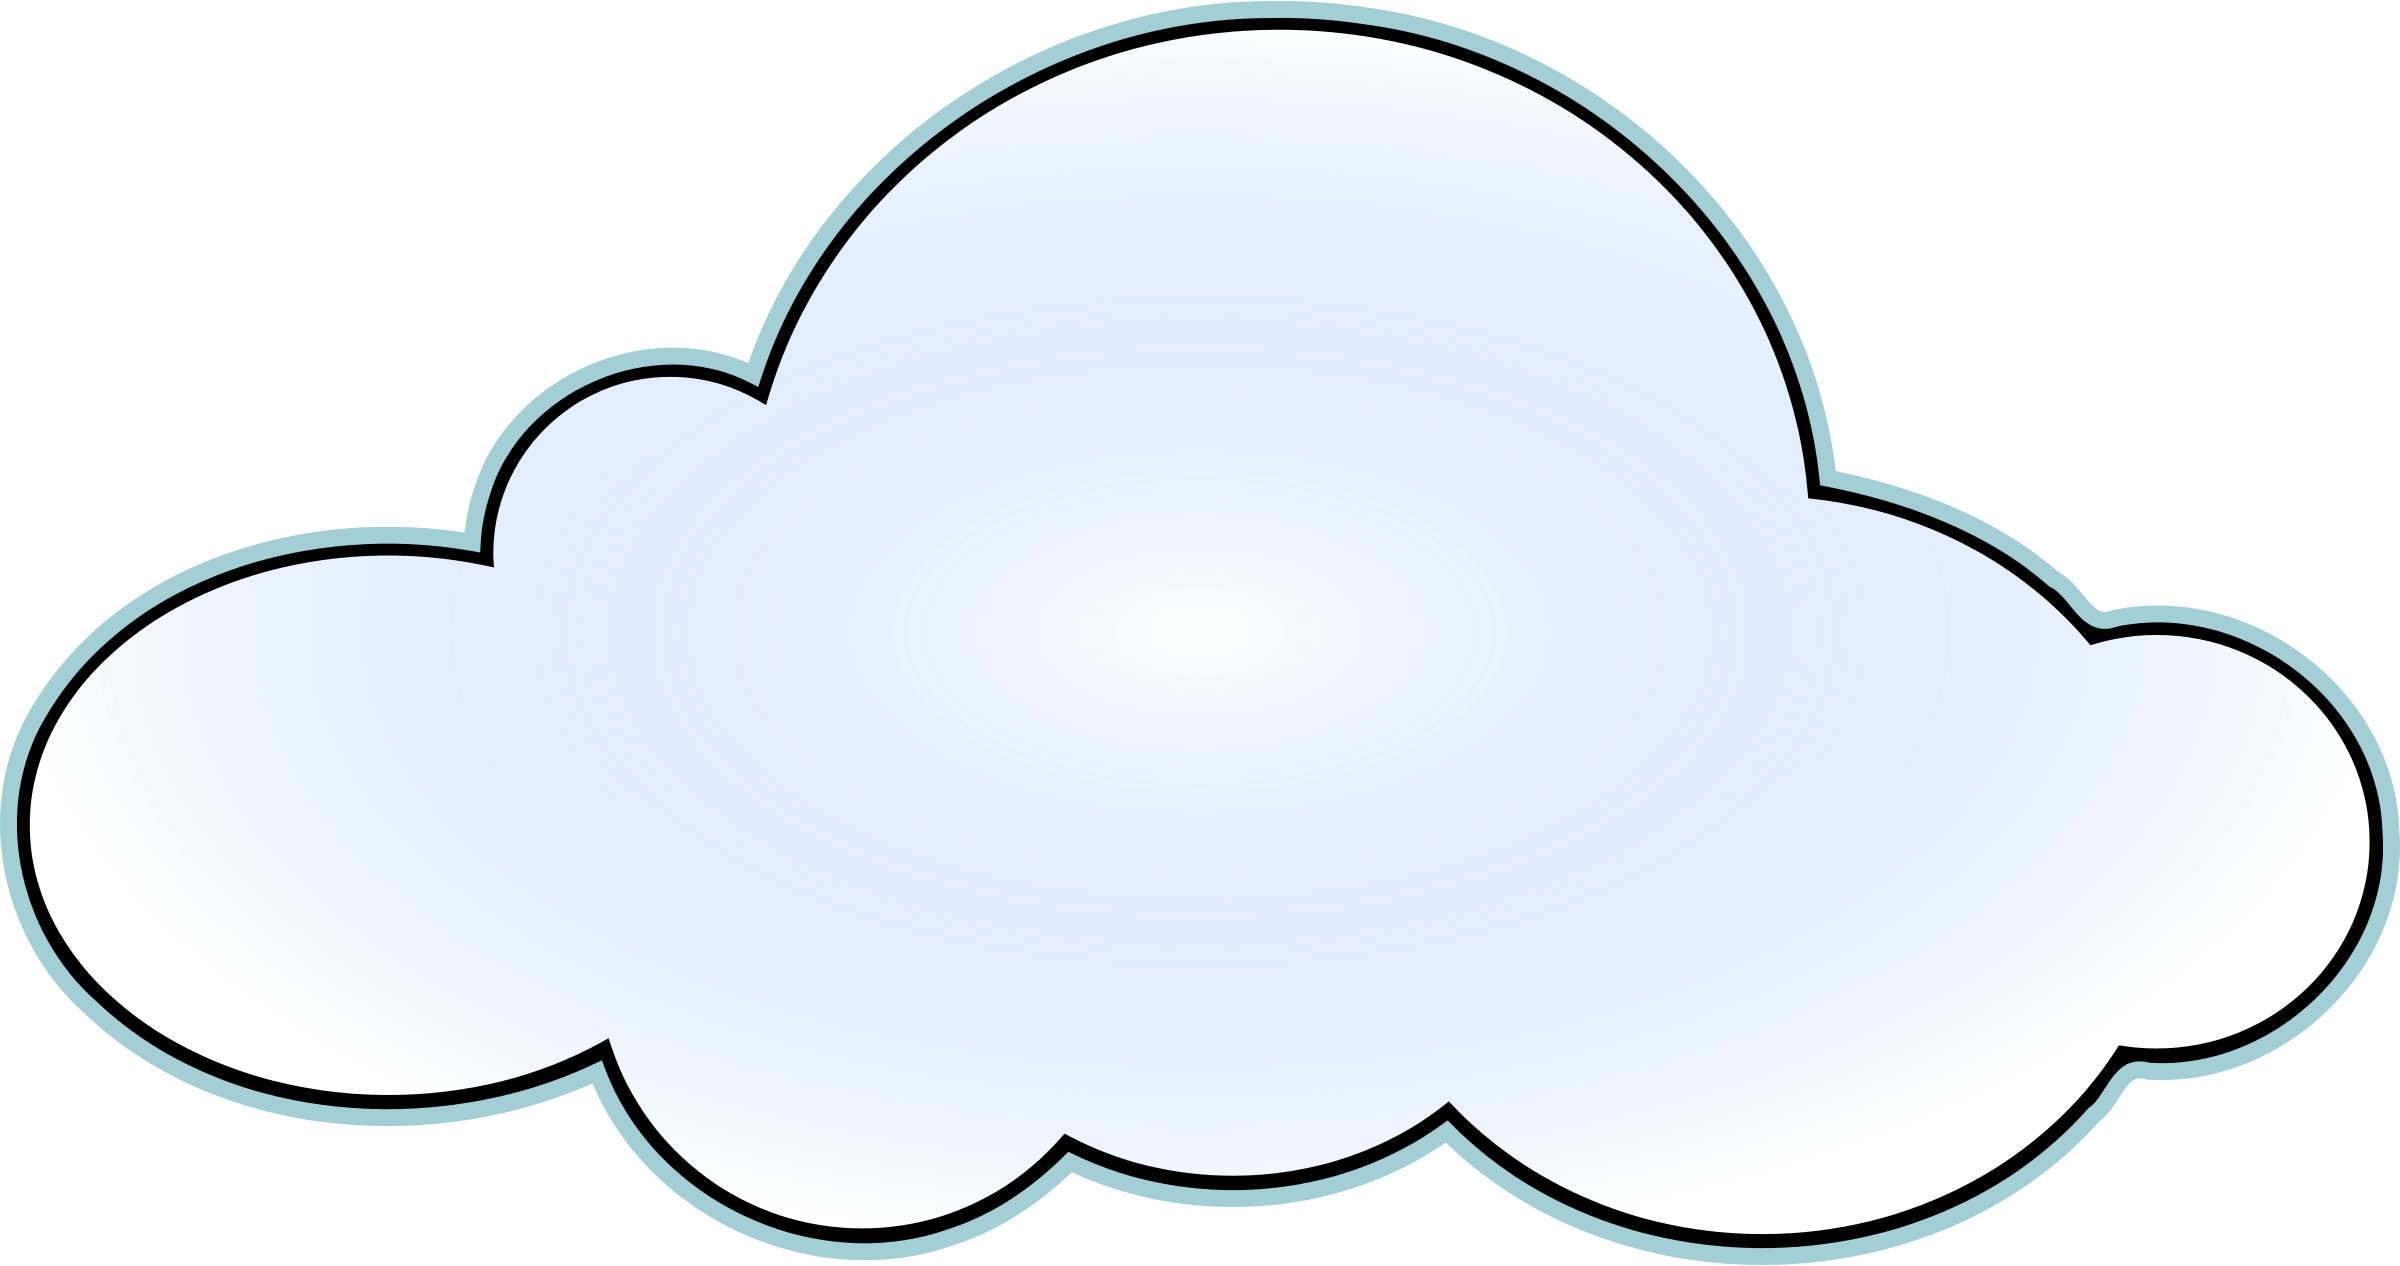 Free cloud cliparts download. Fight clipart share thing